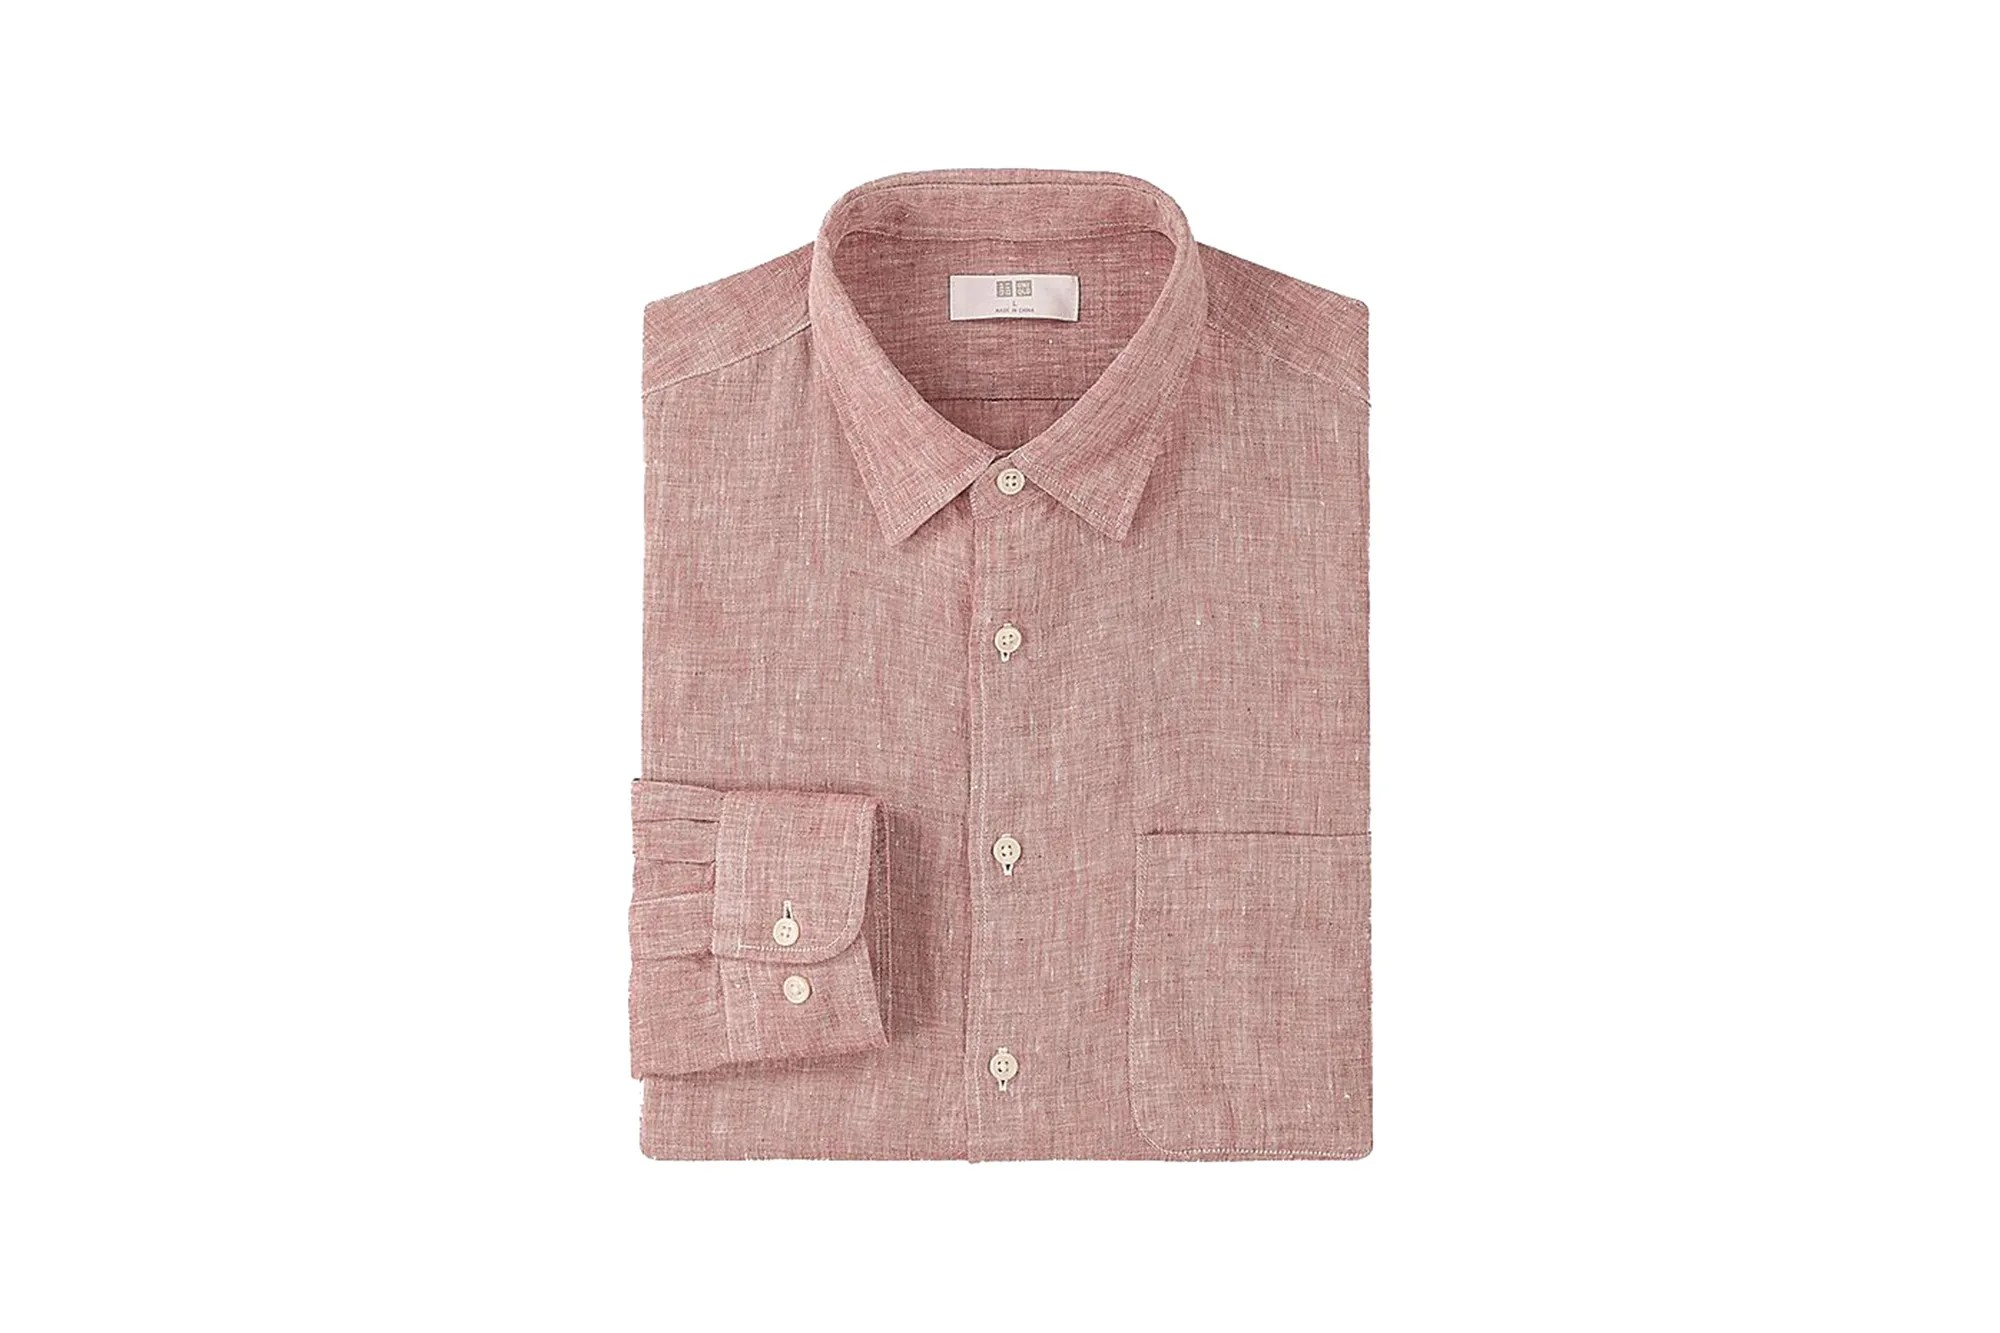 How To Wear A Linen Shirt And Not Look Like Your Dad Gq